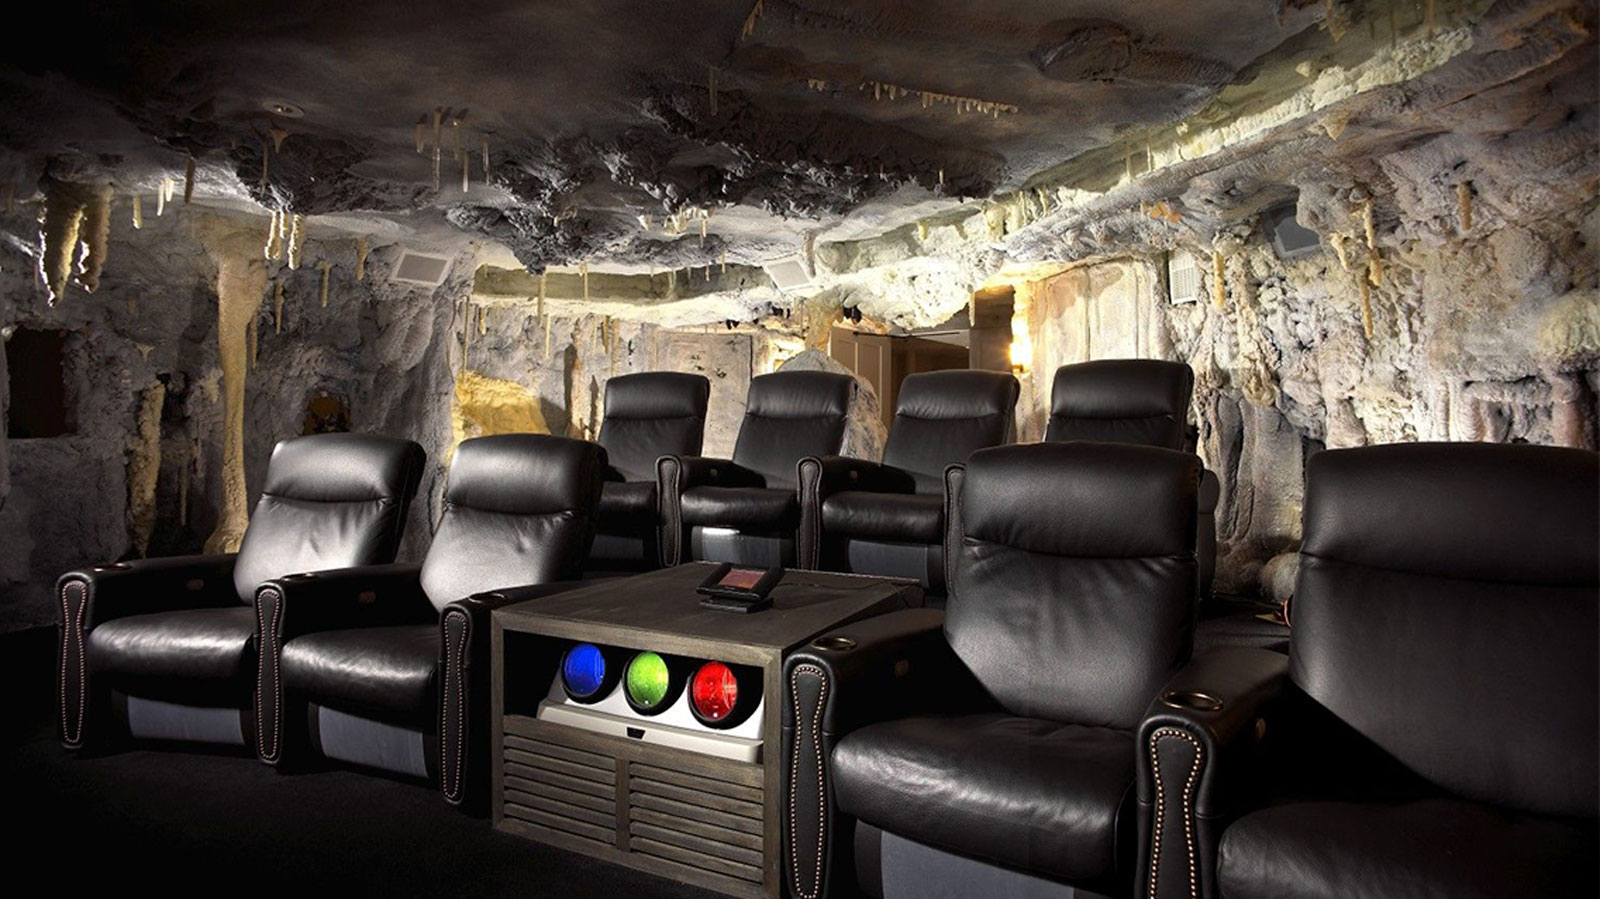 Revisiting The Bat Cave Theater - DC Home Systems on home system design, home entertainment, kitchen design, home furniture, interior design, home cafe design, home theatre room, home theaters mansions, speakers design, home theatre interiors, movies design, bedroom design, home cinema design, theatre floor plan design, wine cellar design, bar design, home bowling design, swimming pool design, theatre classroom design, decks design,